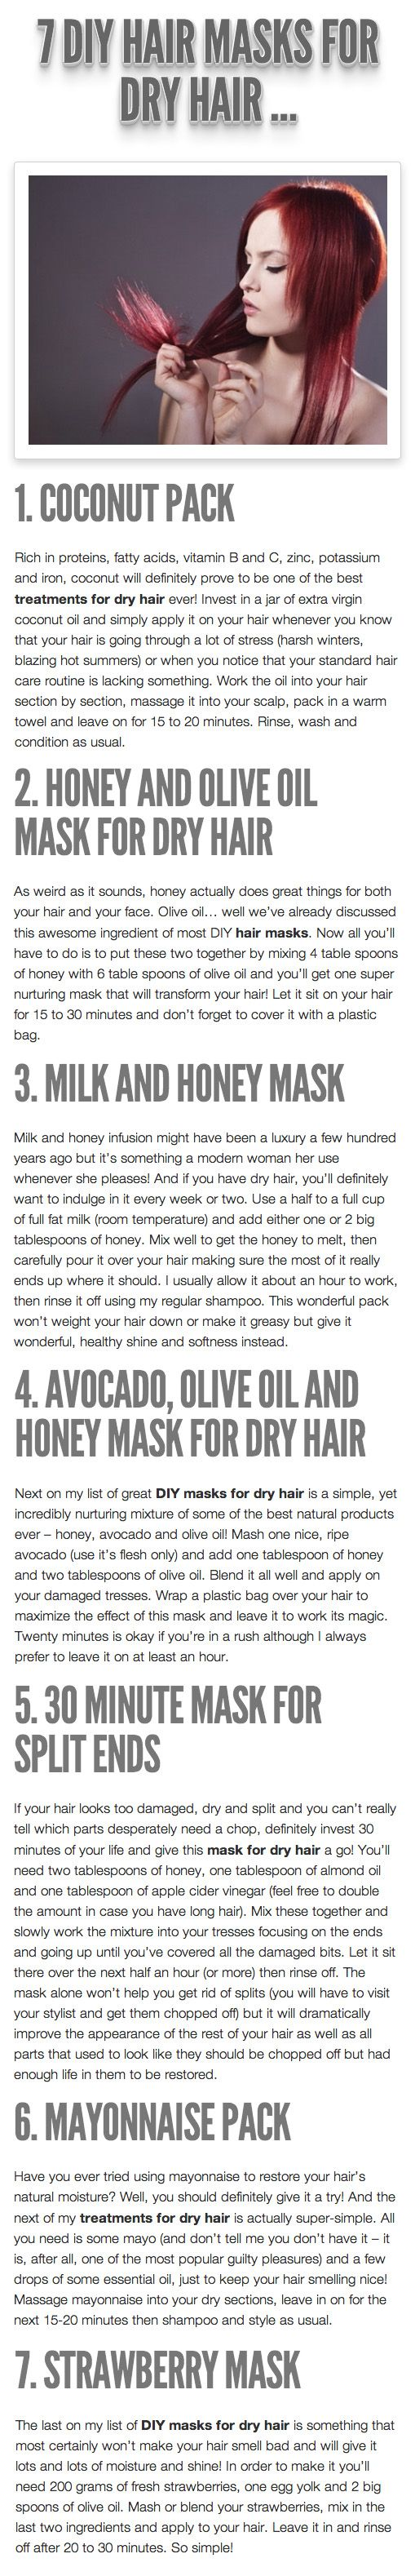 HAIR MASQUES :: 7 DIY's for rescuing DRY Hair | #allwomenstalk #masque #diyhair